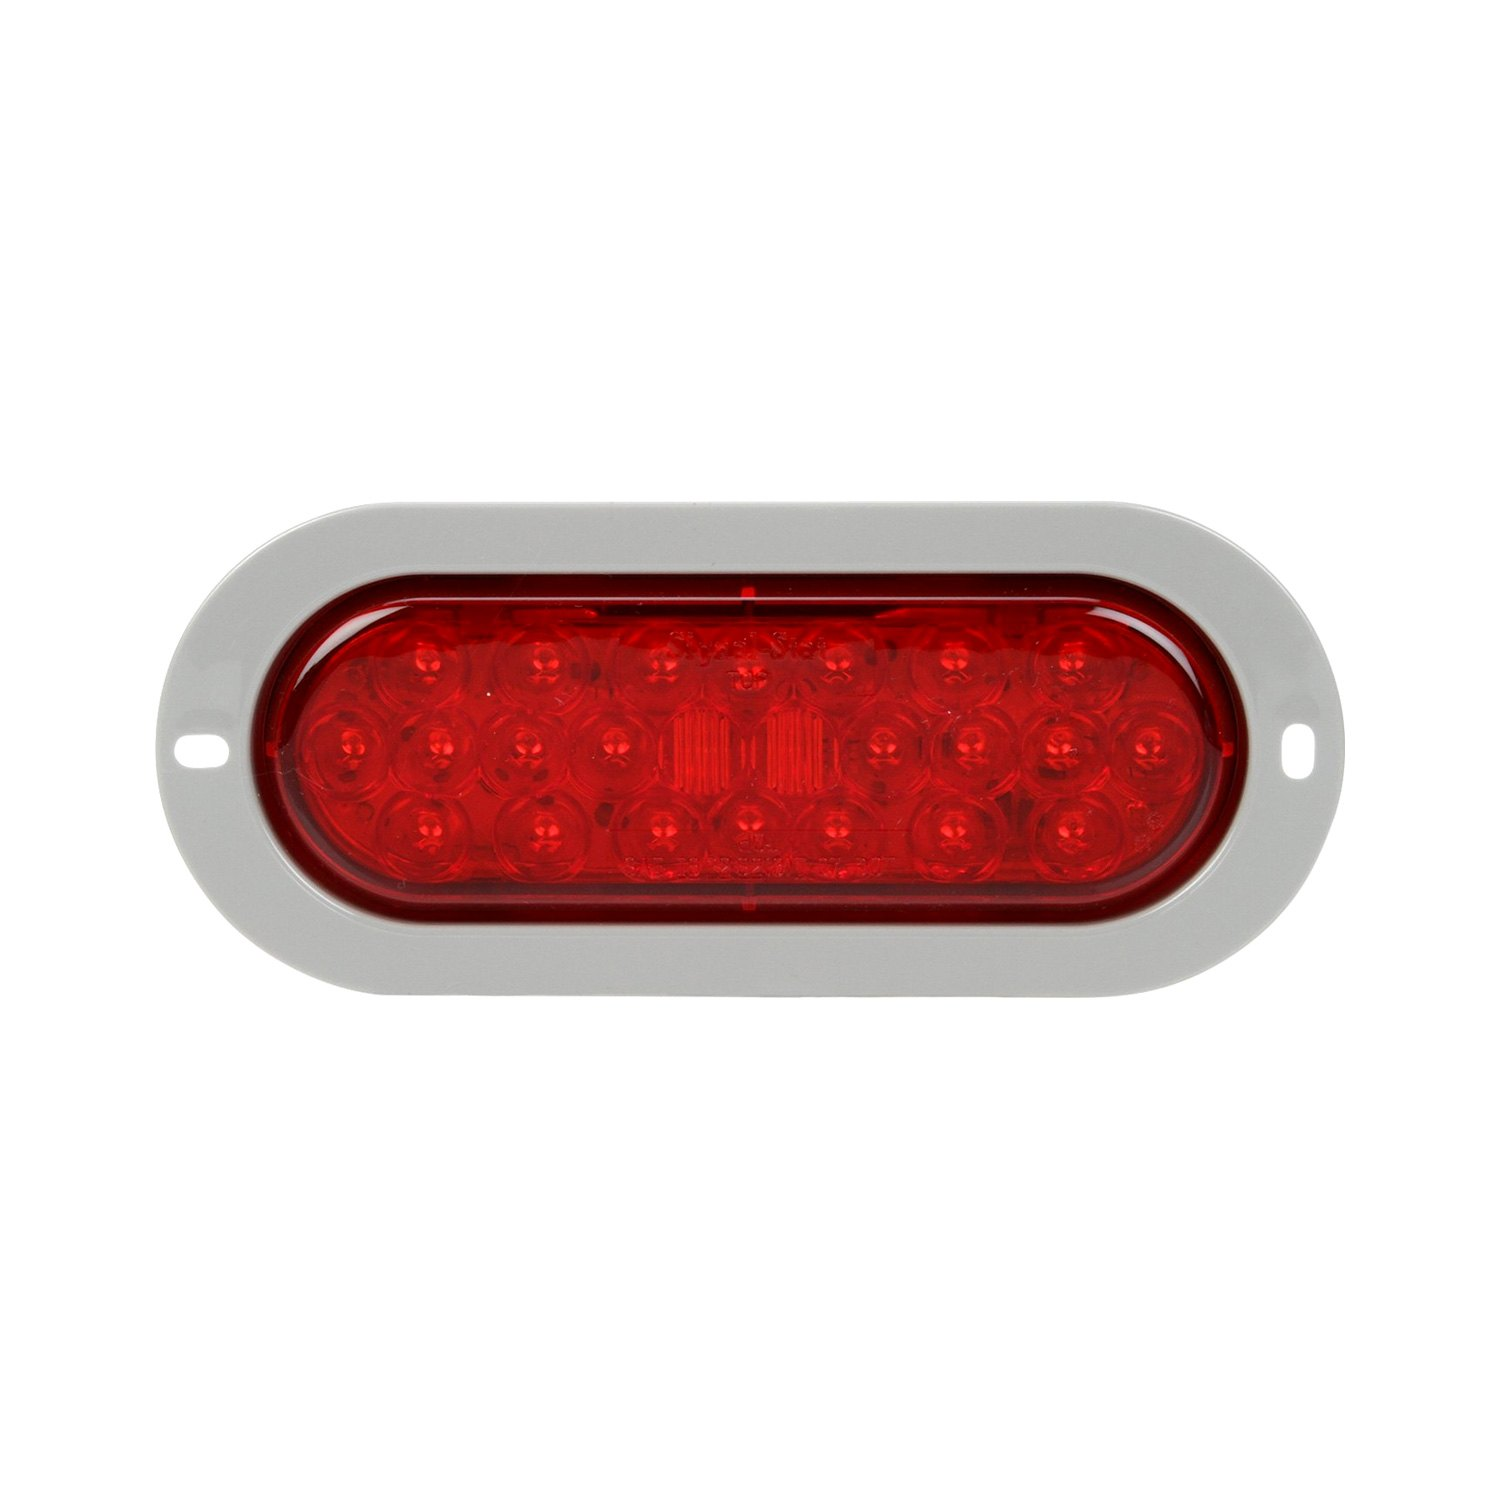 hight resolution of truck lite signal stat 6x2 chrome red rectangular led